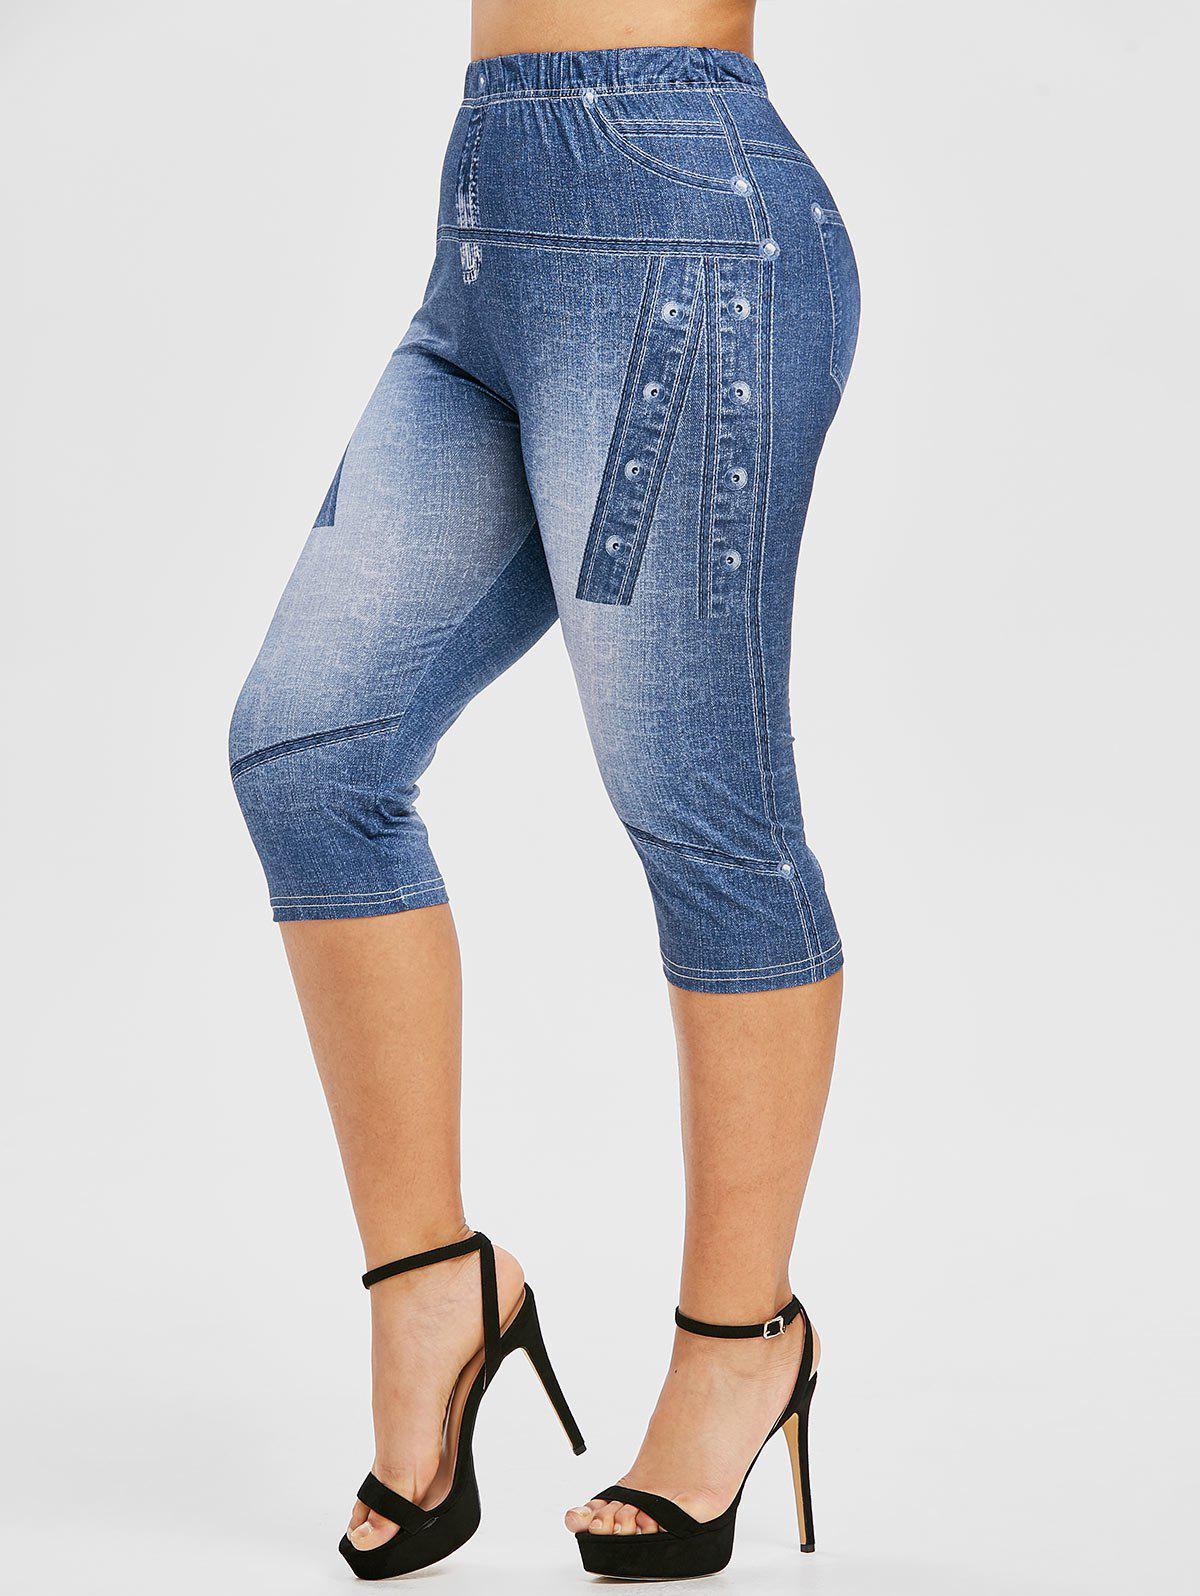 New Plus Size 3D Jean Print Cropped High Waisted Jeggings